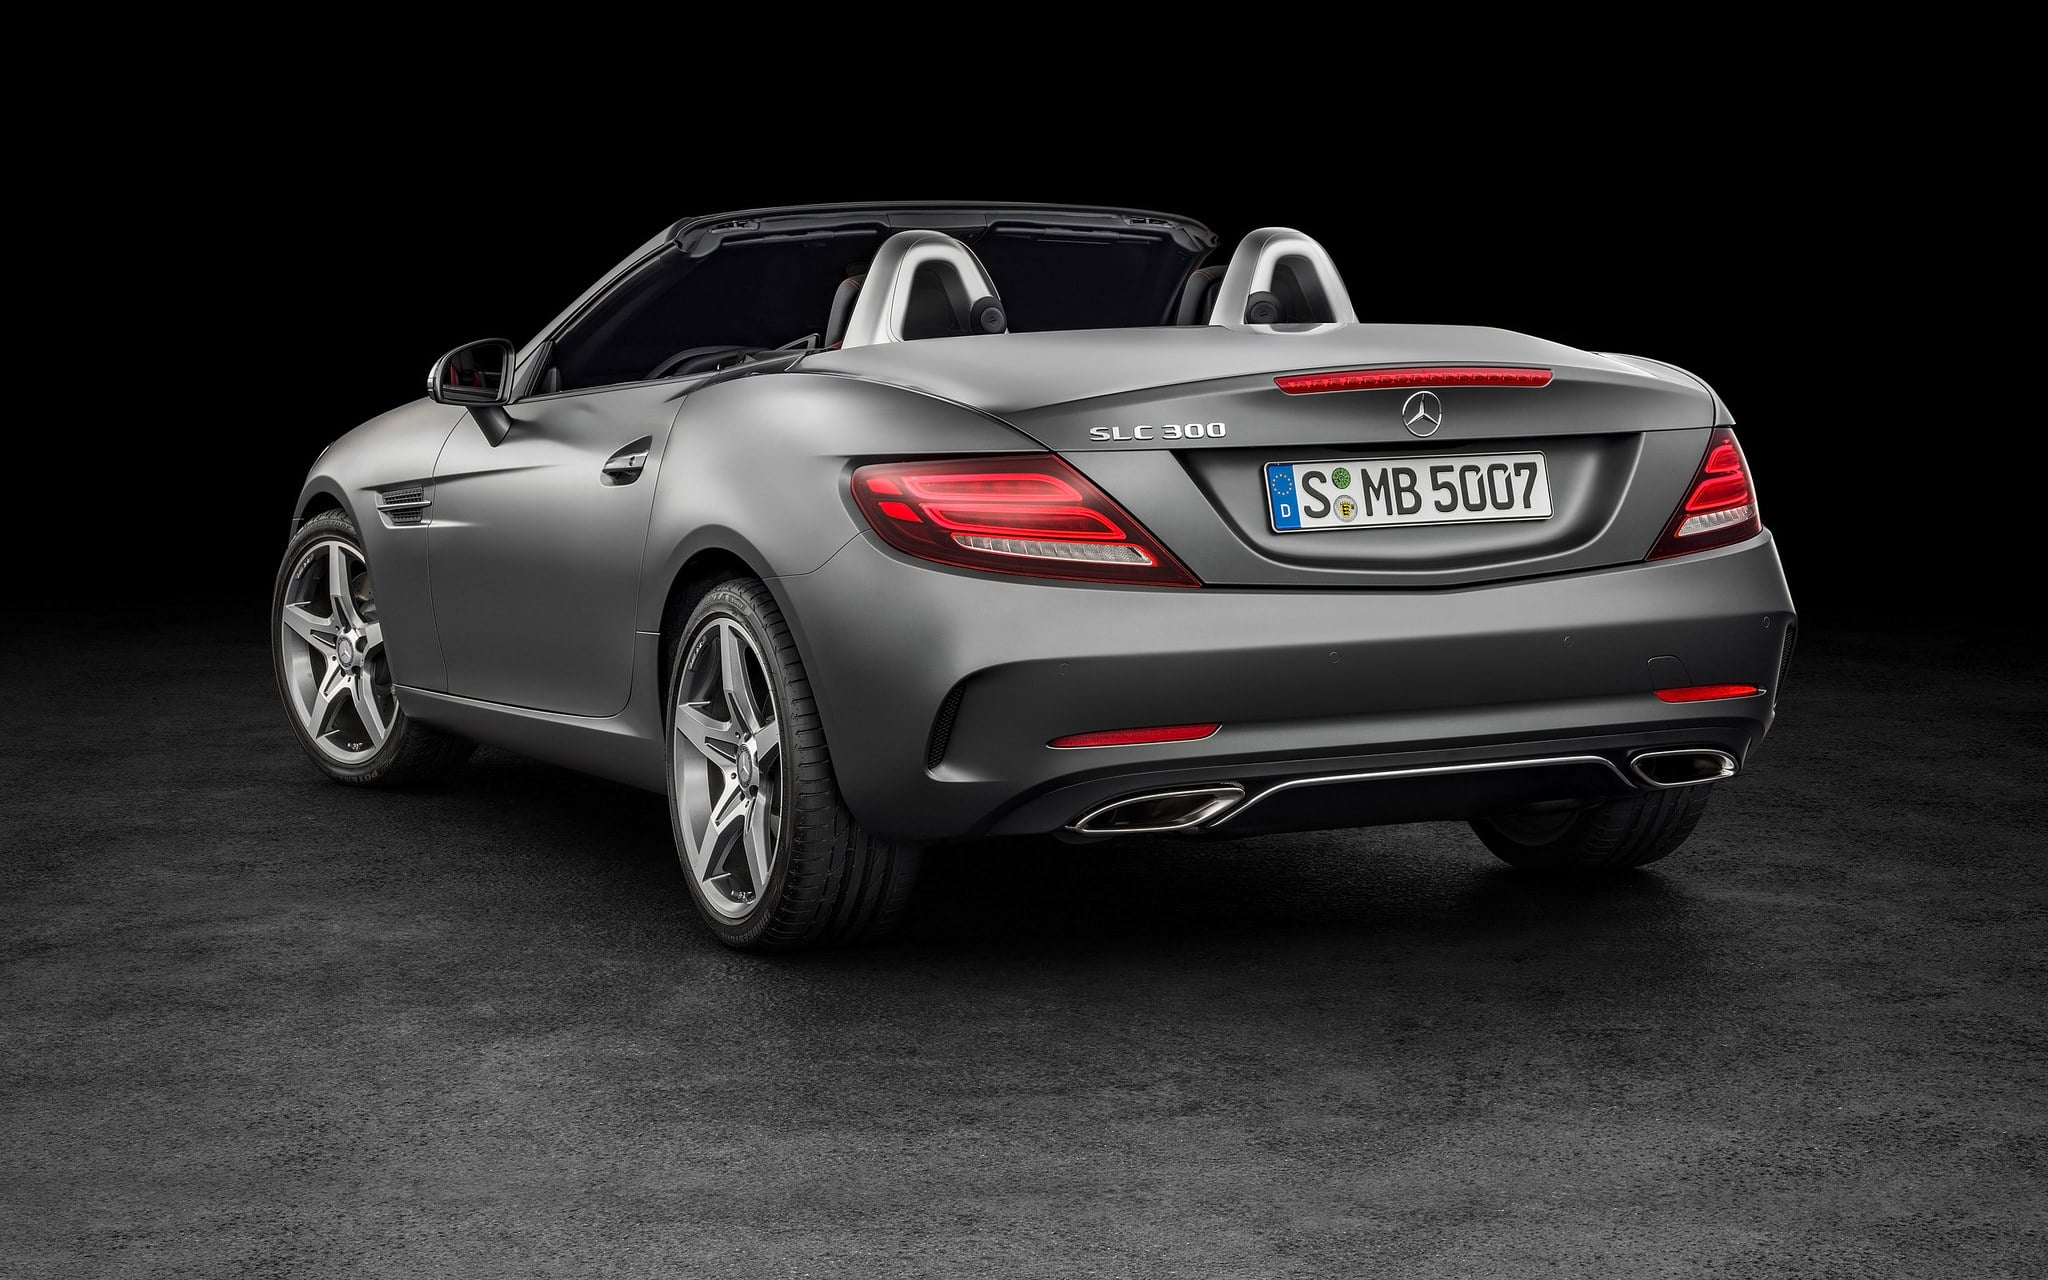 2016 Mercedes Benz SLC 300 HD pic for PC